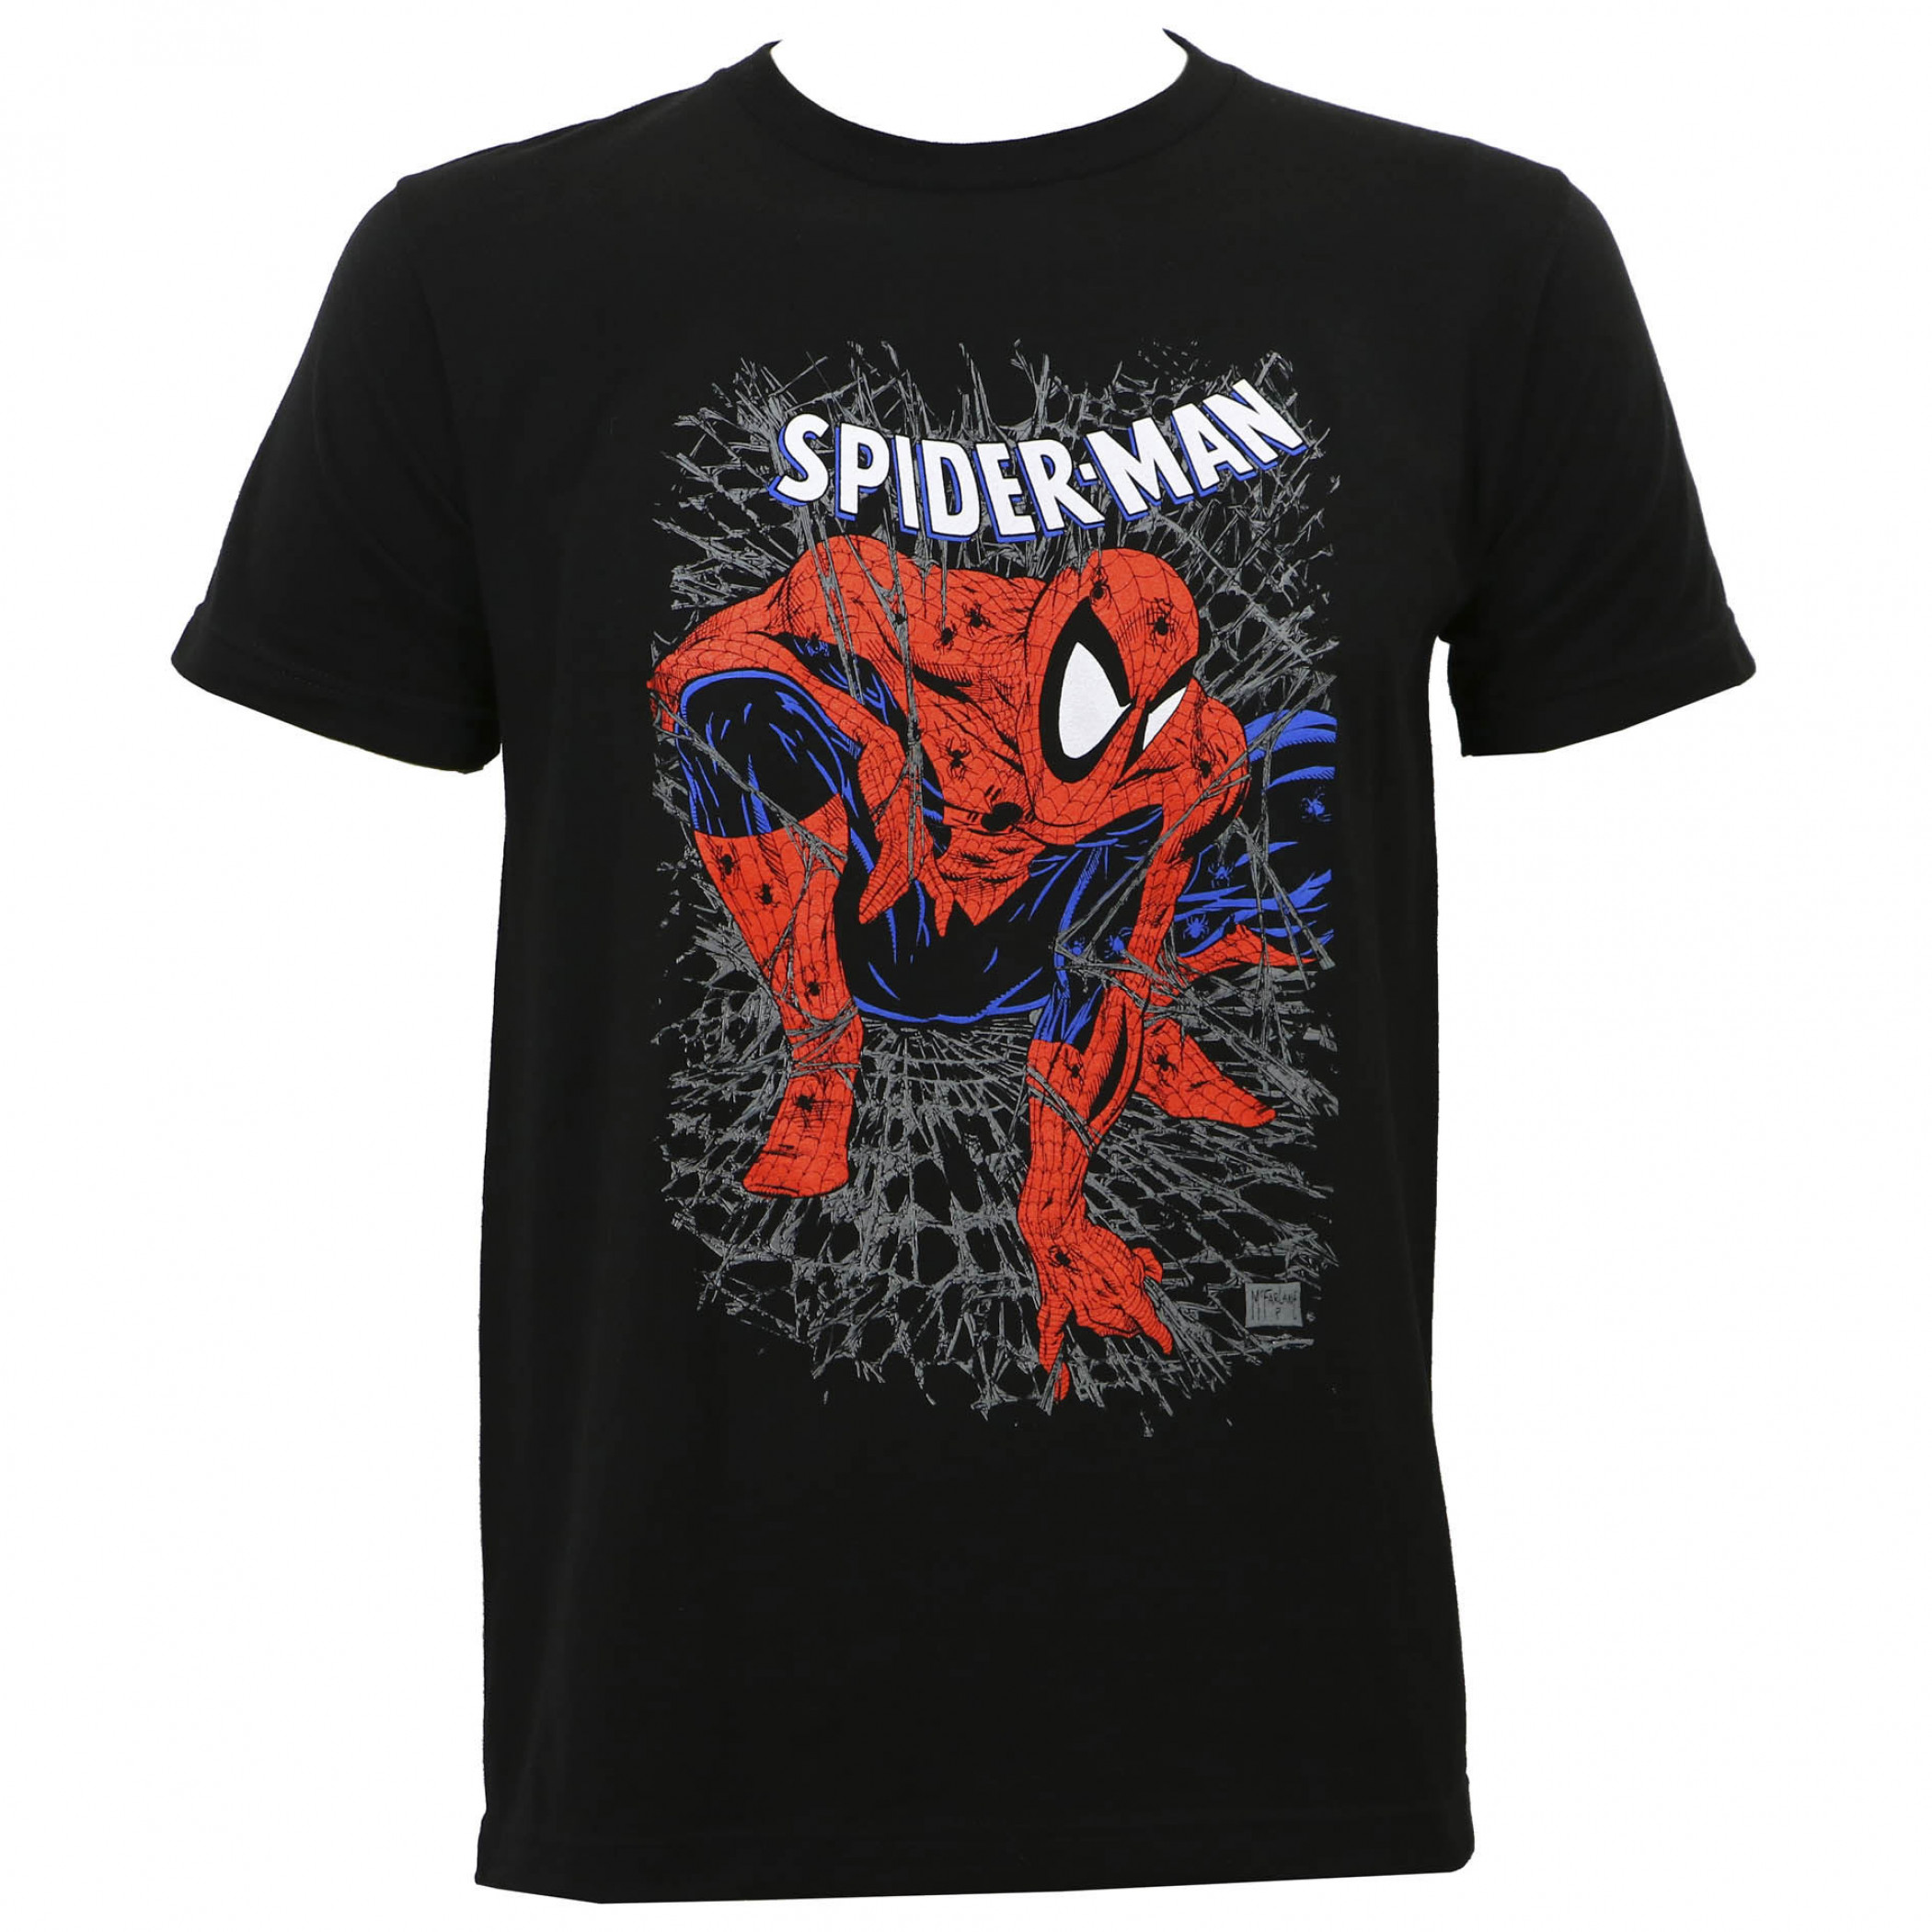 Spider-Man Tangled Web Men's T-Shirt